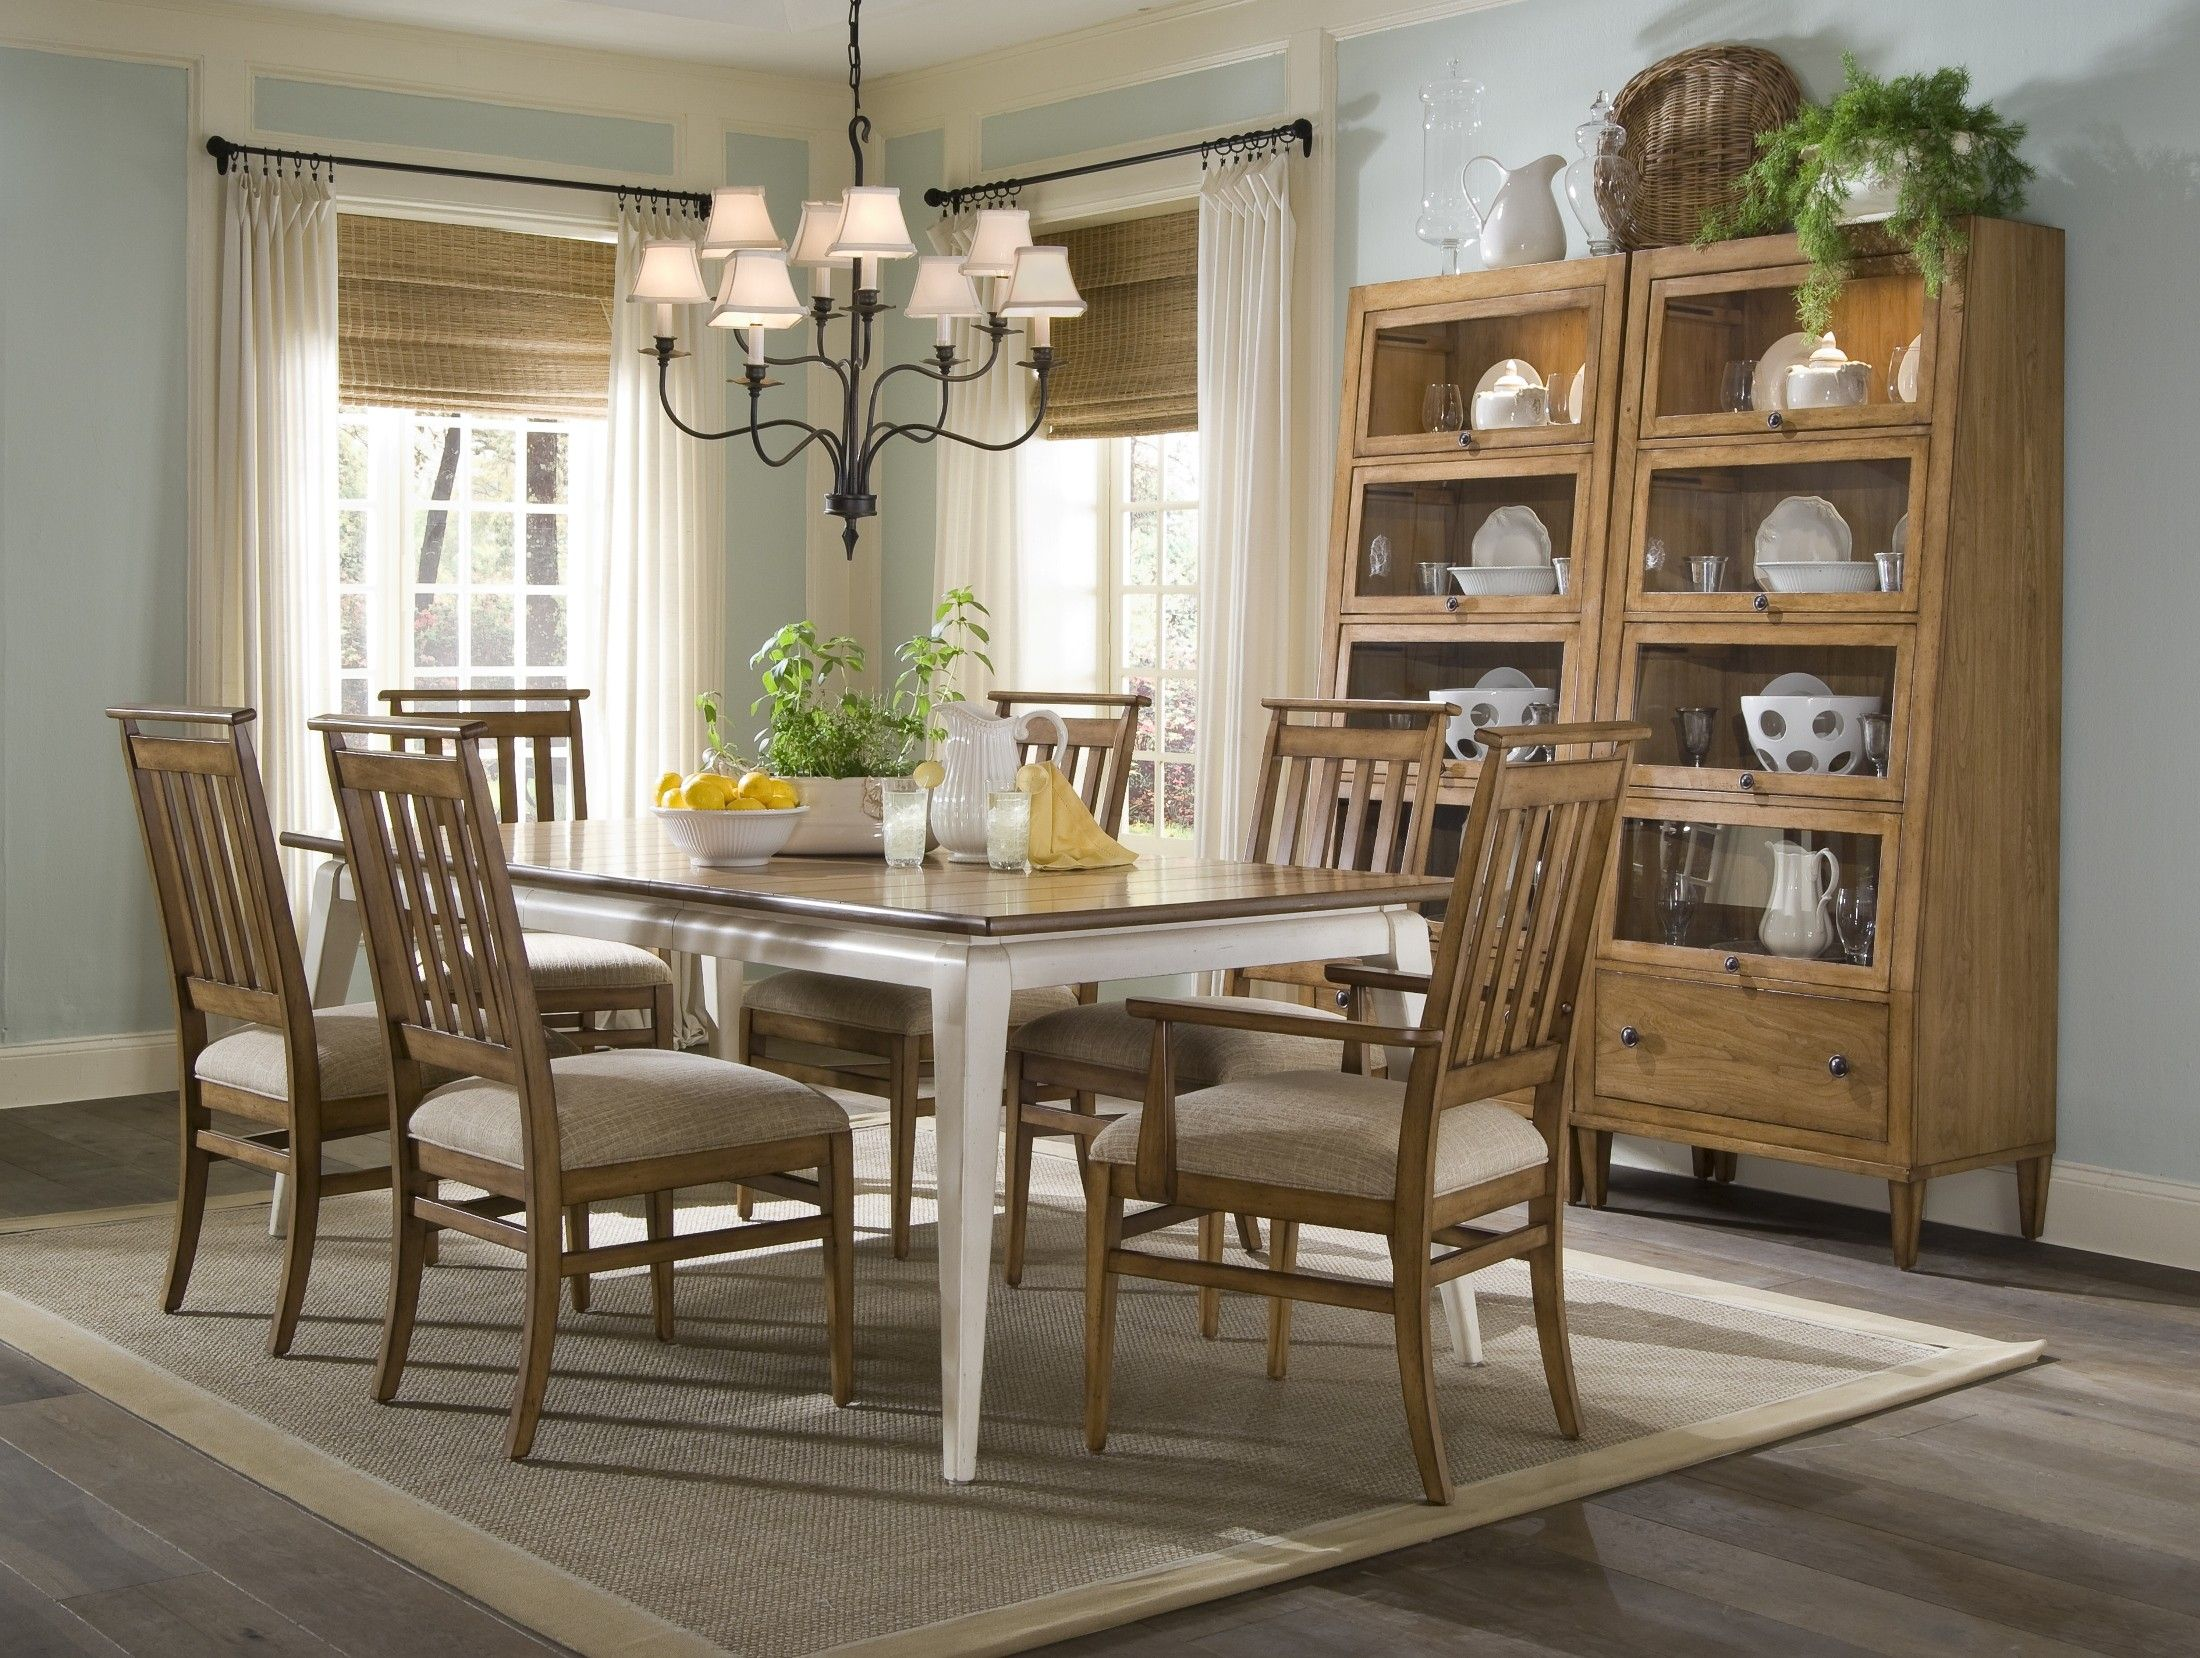 Captivating Country Dining Room Furniture Inside Modern Design White Decorating Ideas  Lonny